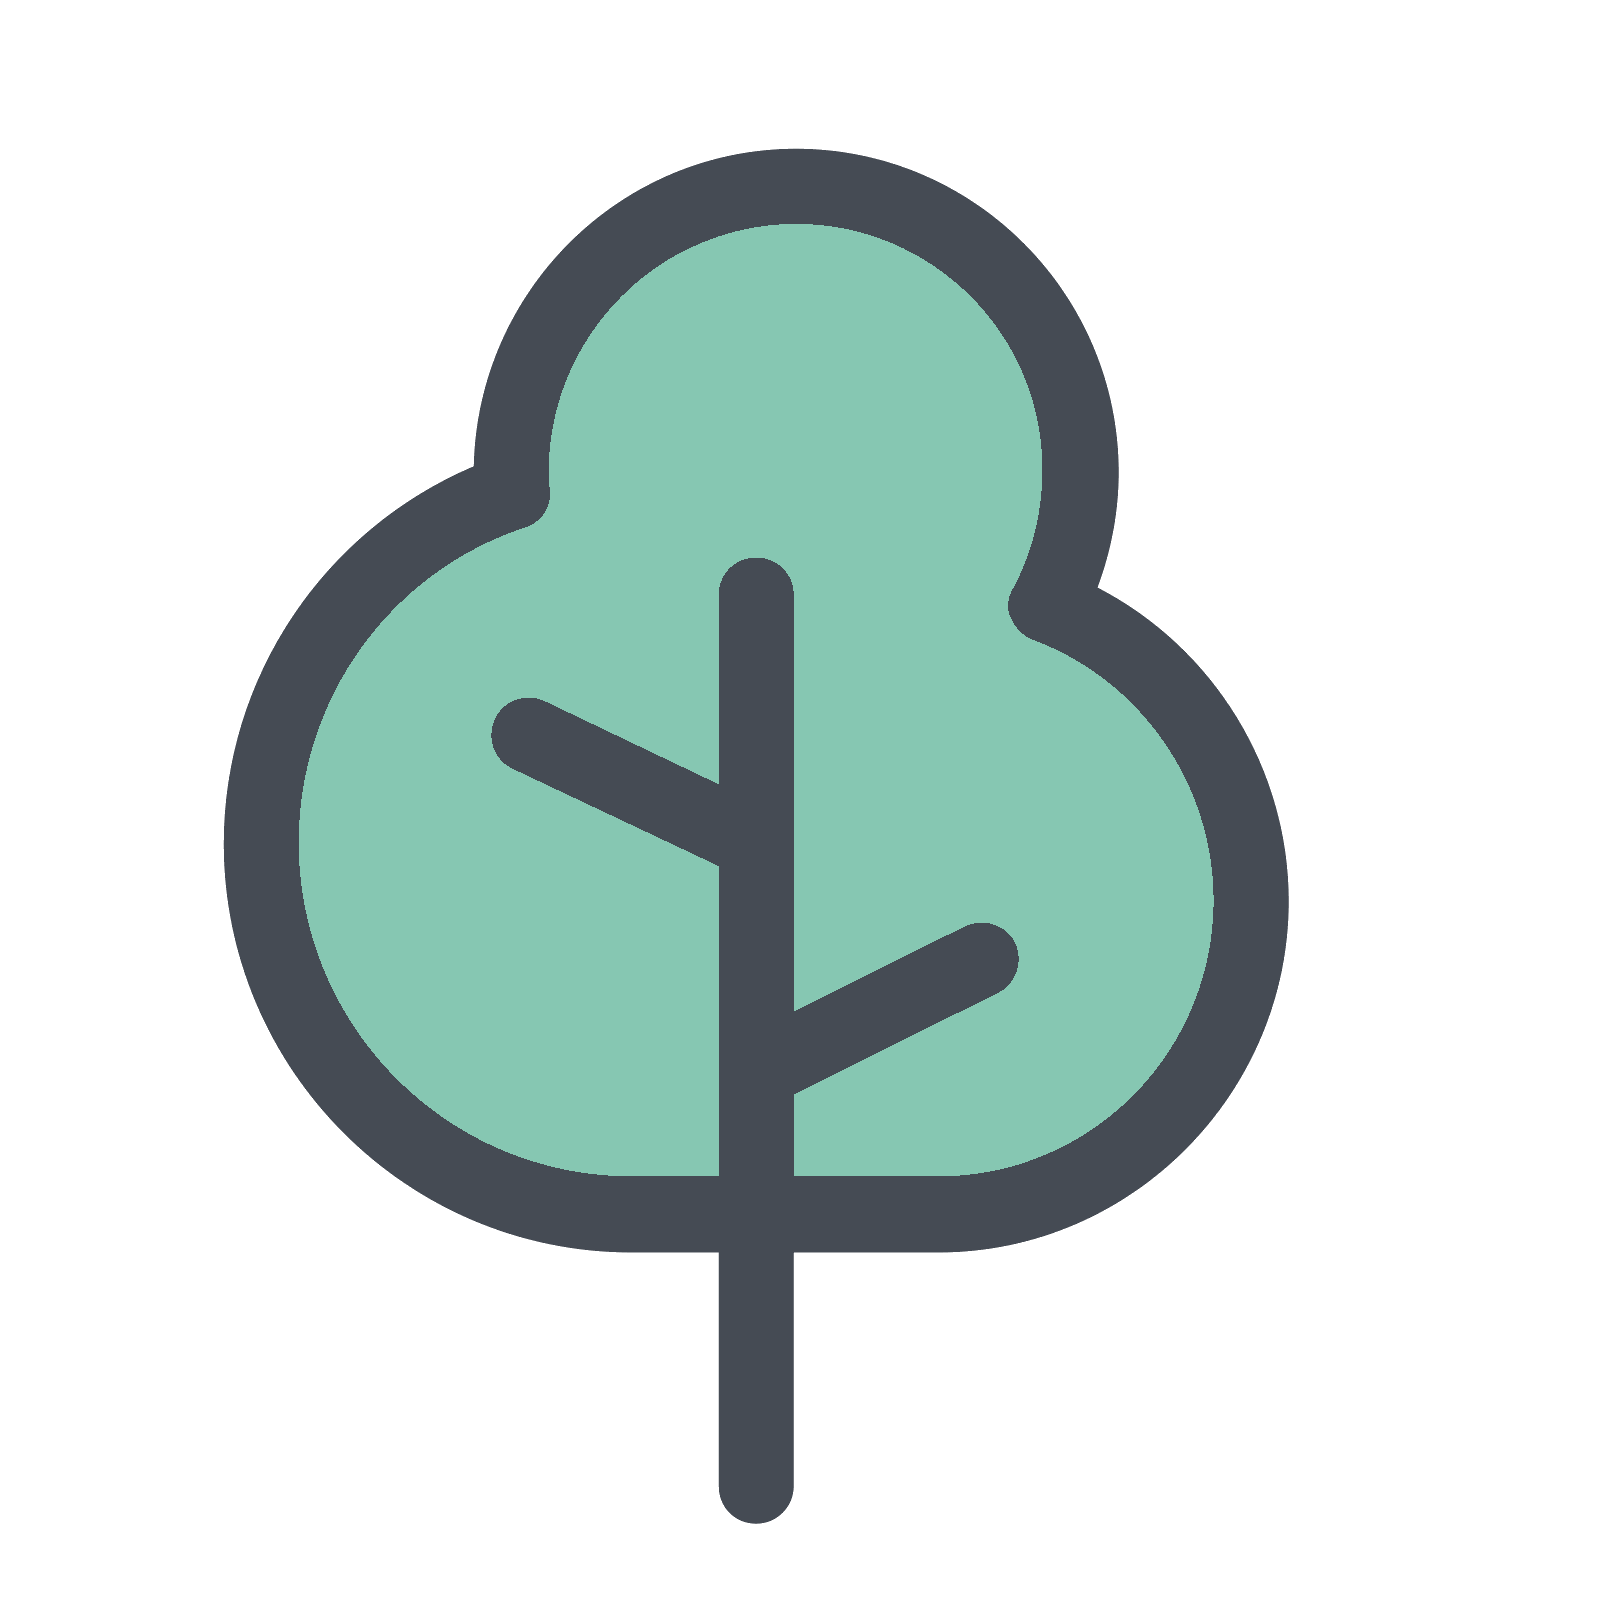 Vector trees png. Tree icon free download